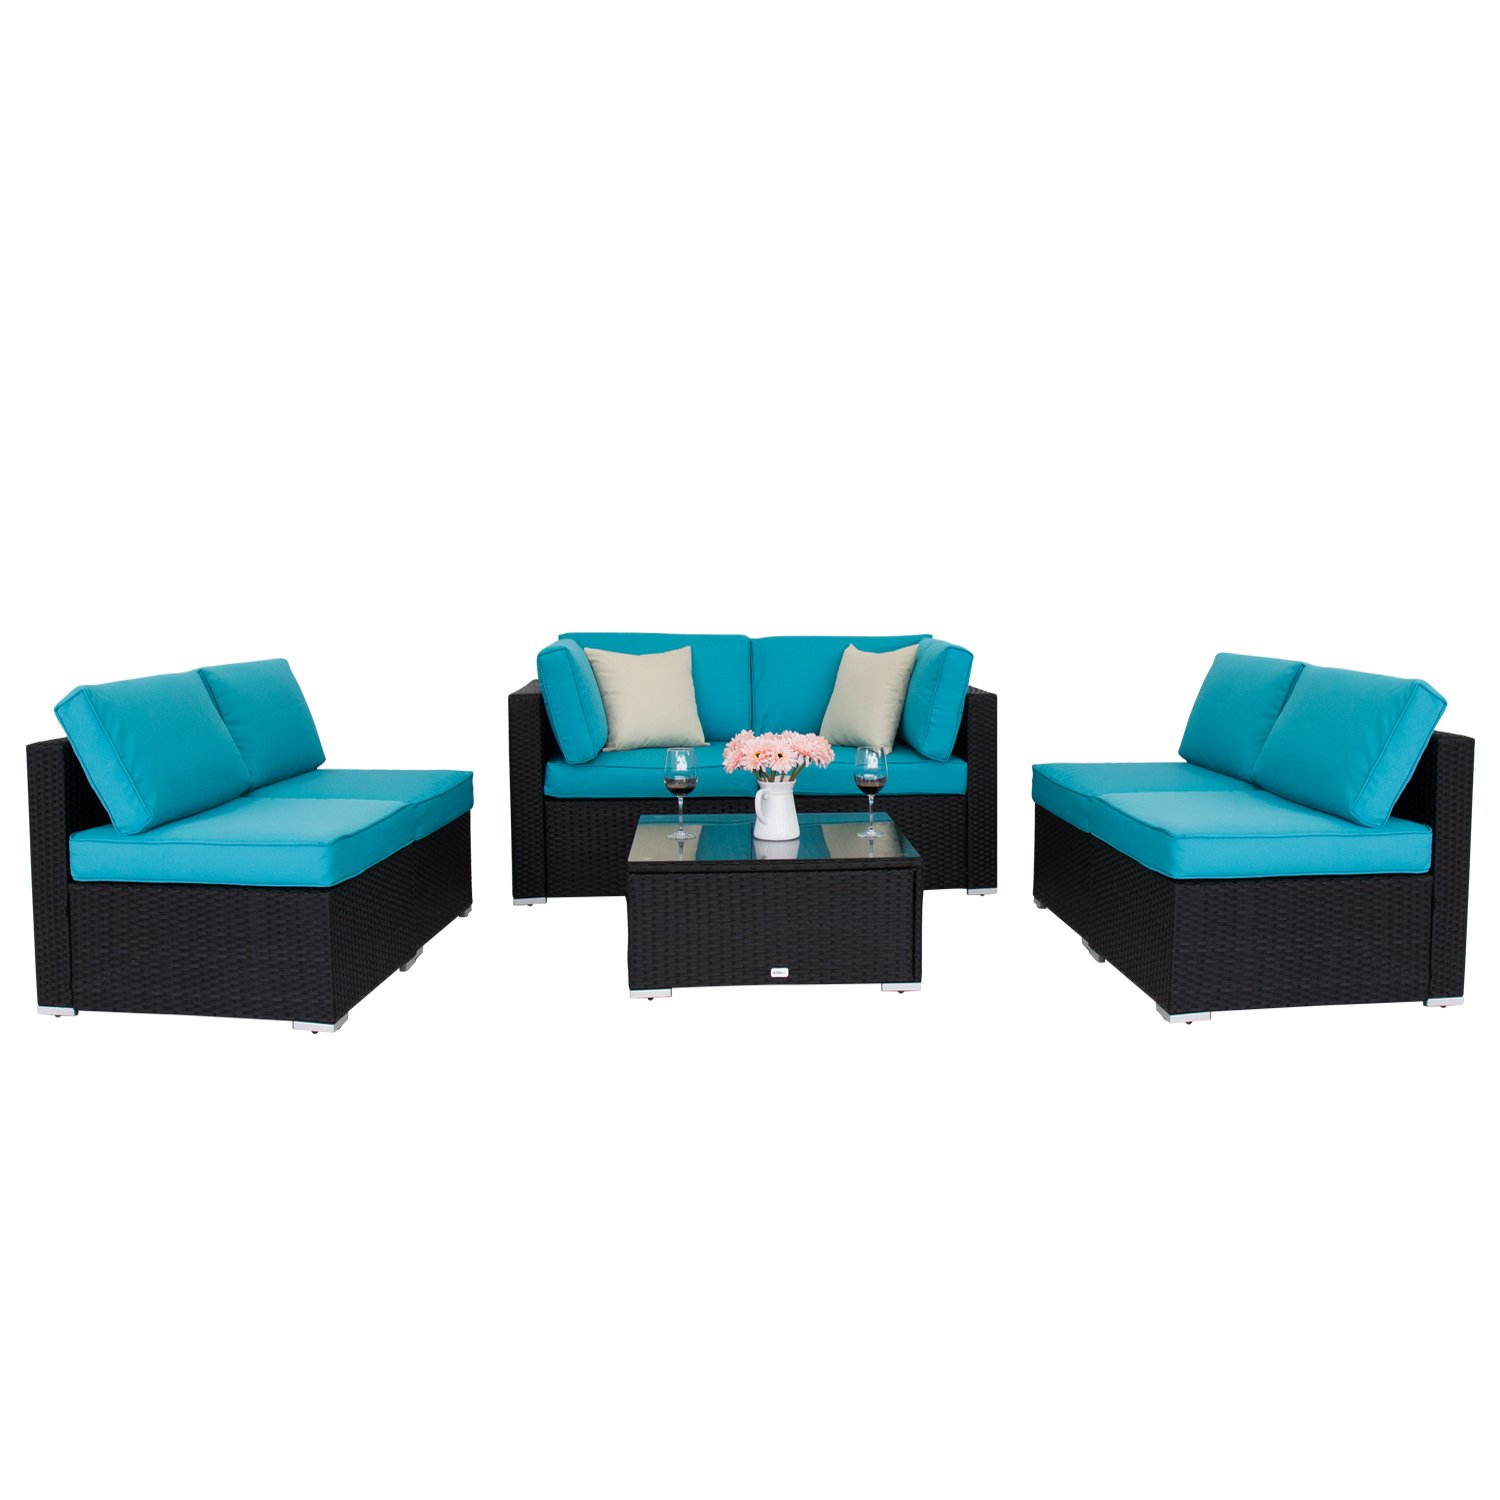 Peach Tree 7 PCs Outdoor Patio PE Rattan Wicker Sofa Sectional Furniture Set With 2 Pillows and Tea Table by Peachtree Press Inc (Image #6)